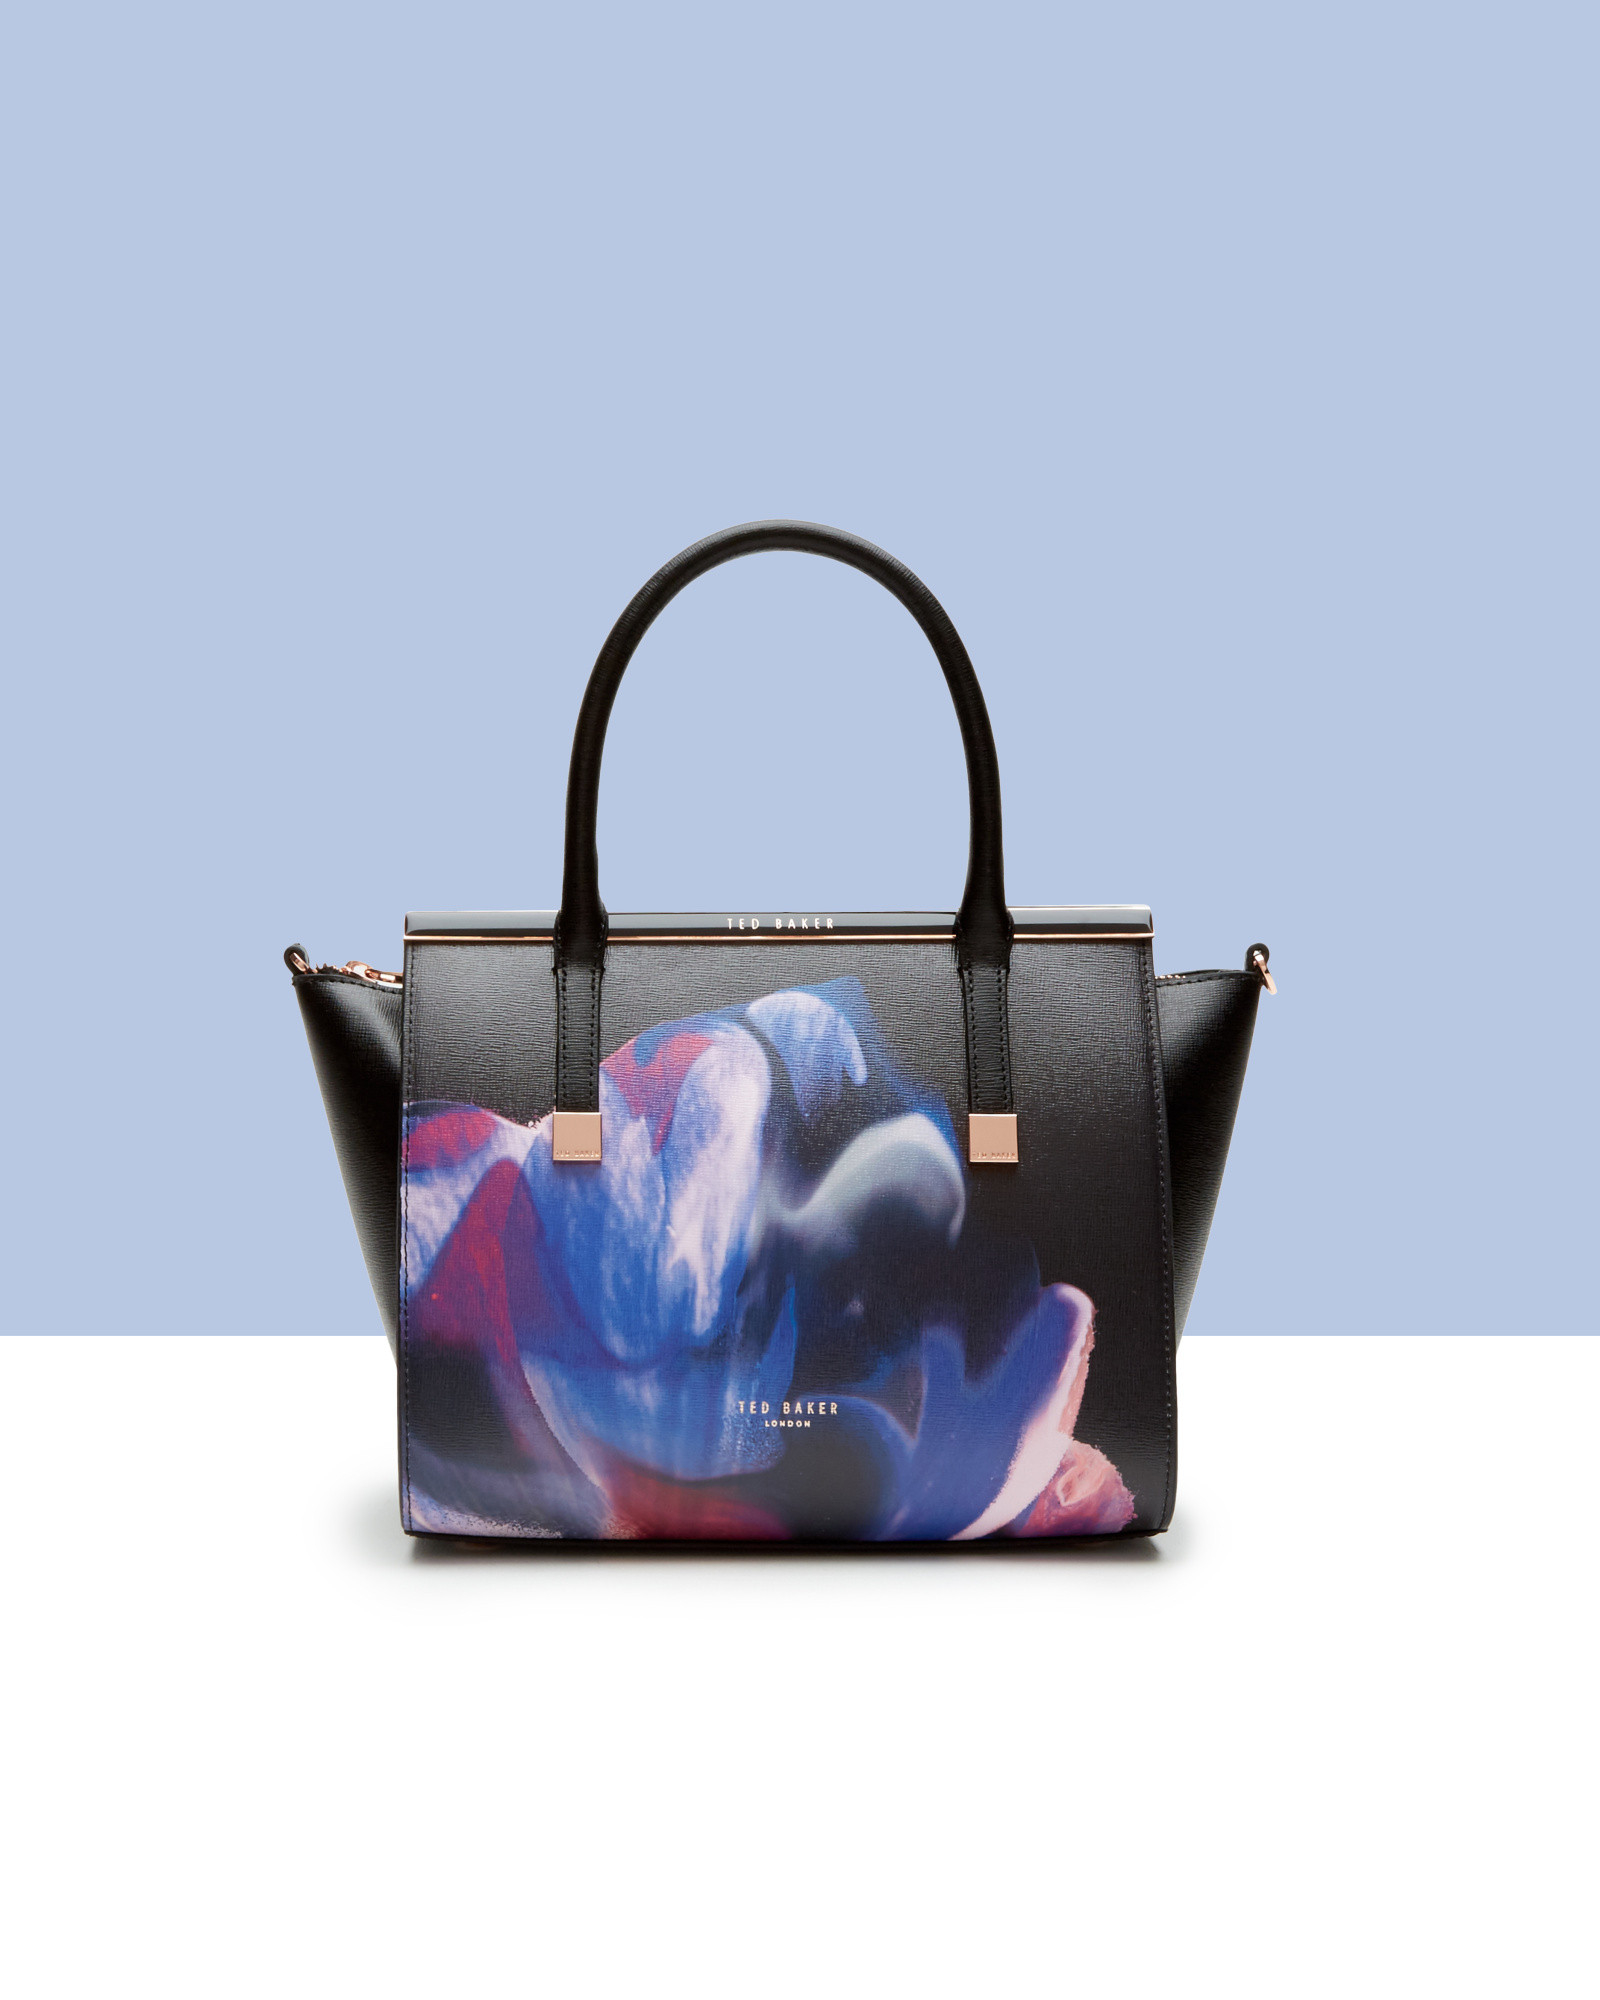 f59f9f9a3d7 Ted Baker Cosmic Bloom Leather Tote Bag in Black - Lyst